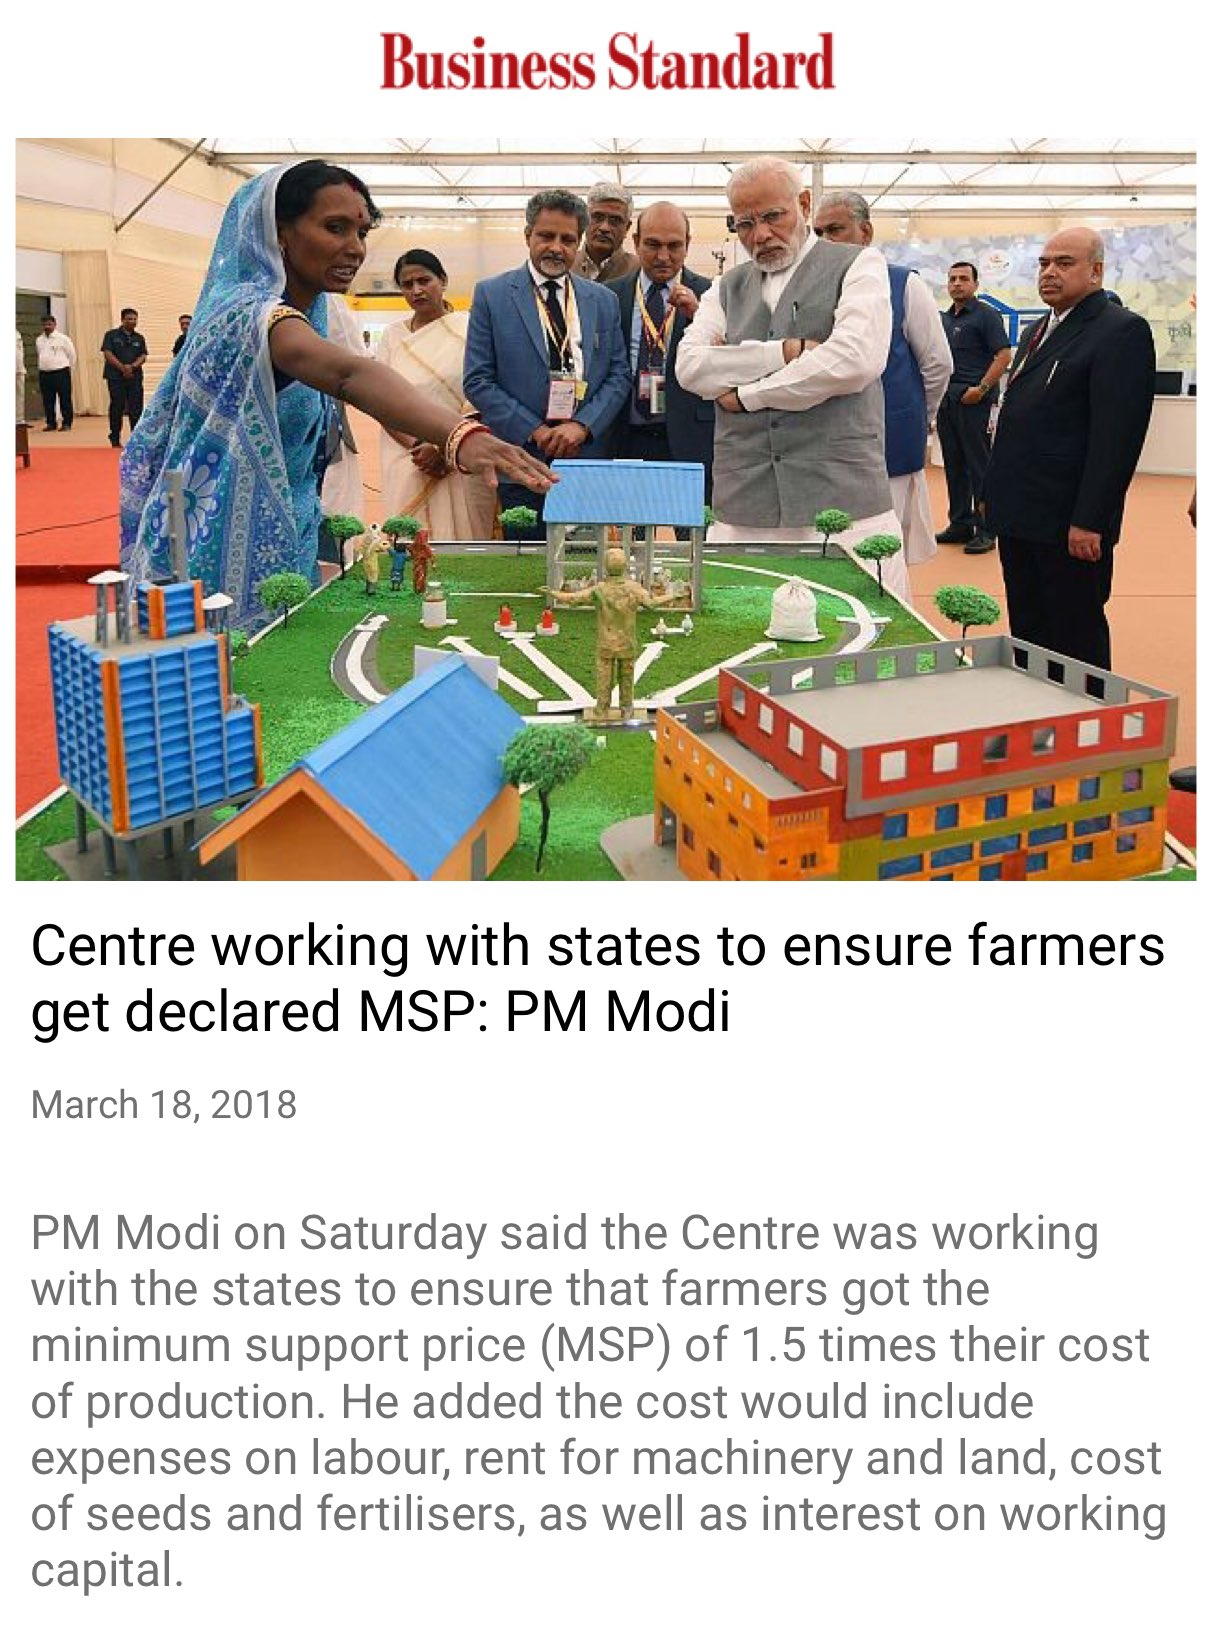 Centre working with states to ensure farmers get declared MSP: PM Modi https://t.co/CRQo0UxYmA  via NMApp https://t.co/UTPzgPZkZL